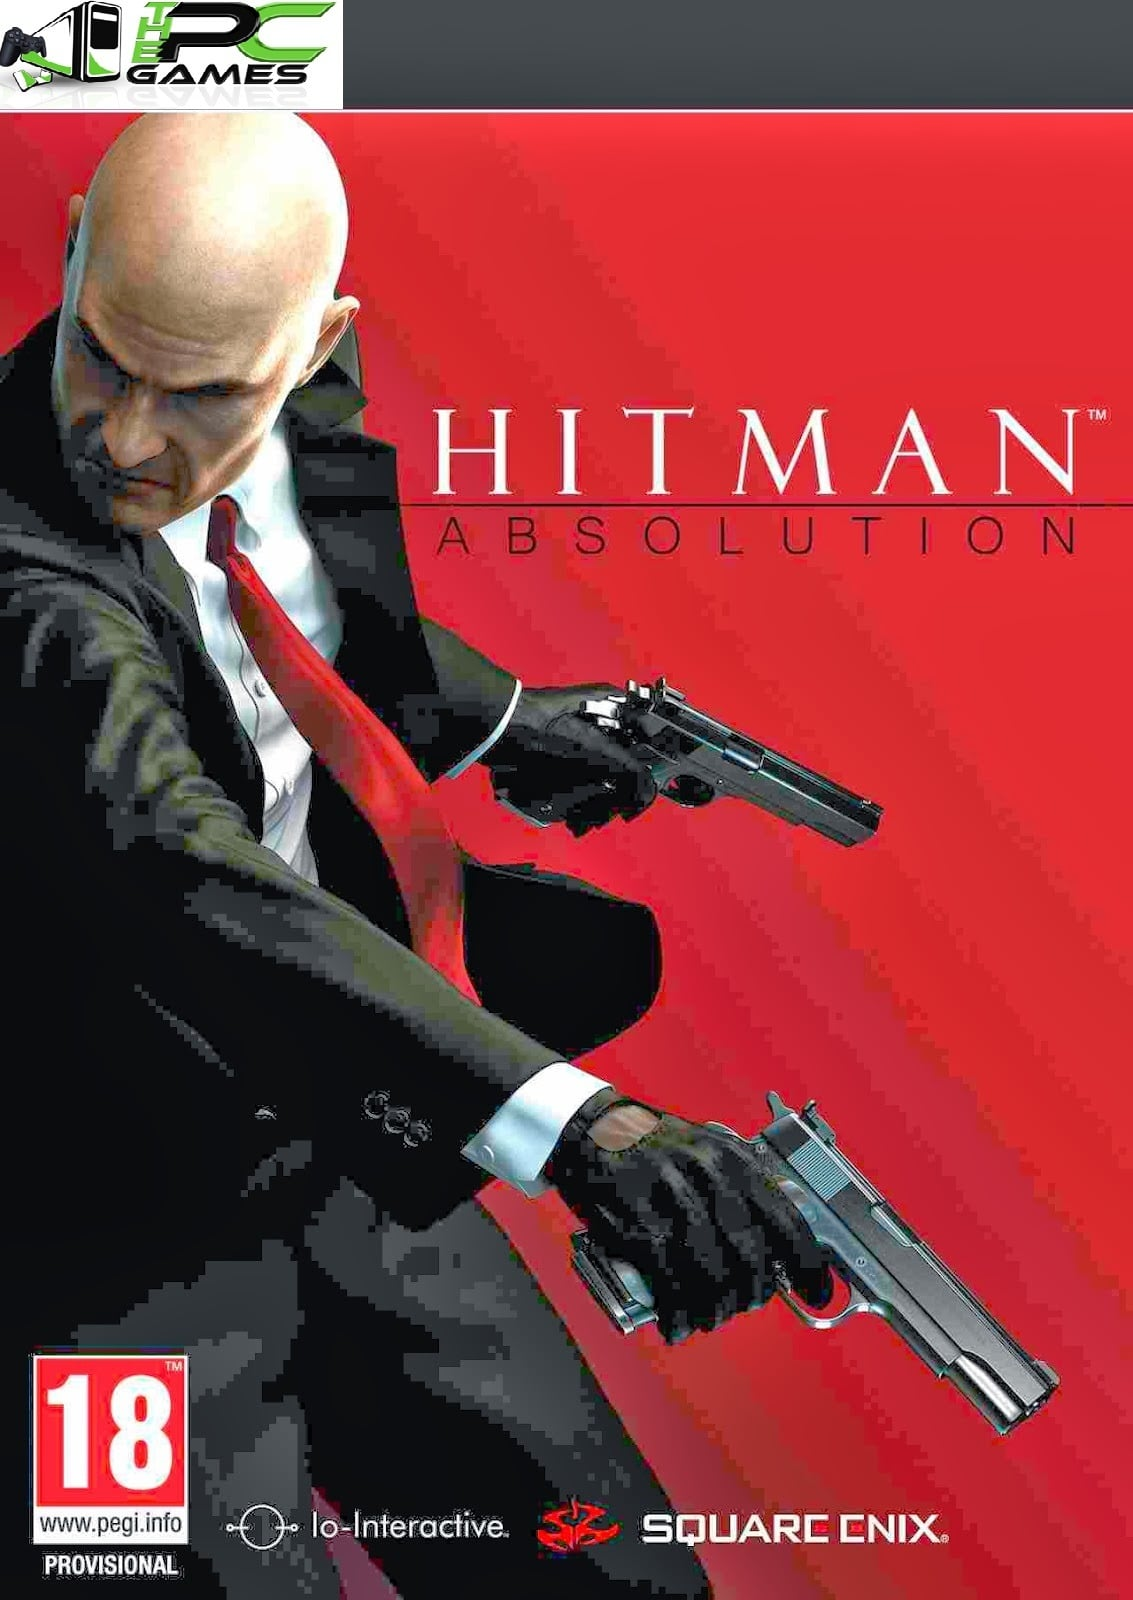 """Hitman Absolution Pc Game Free Download - Hitman Absolution Pc Game Free Download <p>Download Hitman Absolution Pc Game Free Download for FREE Hitman Absolution Pc Game Free Download <!.appendChild(t)}for(o=Array(""""flag"""",""""emoji""""),t.supports={everything:!0,everythingExceptFlag:!0},r=0;r Get PUBG hacks for free on freecheatsforgames.com</p> - Free Cheats for Games"""